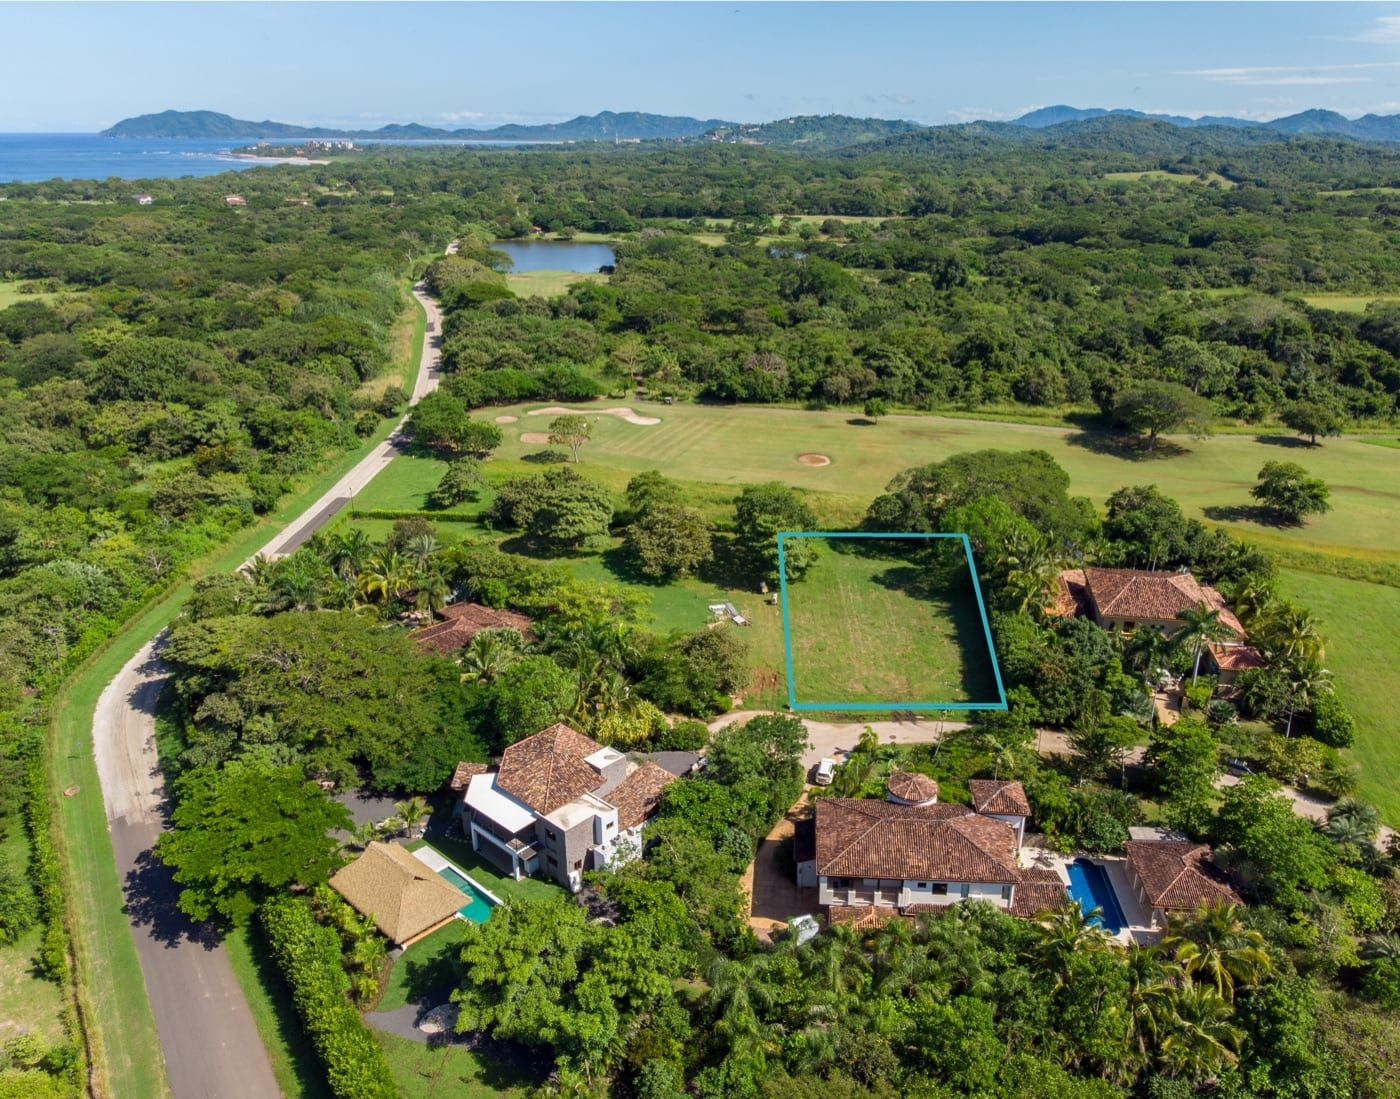 Hole-in-One from Your Building Lot in Hacienda Pinilla